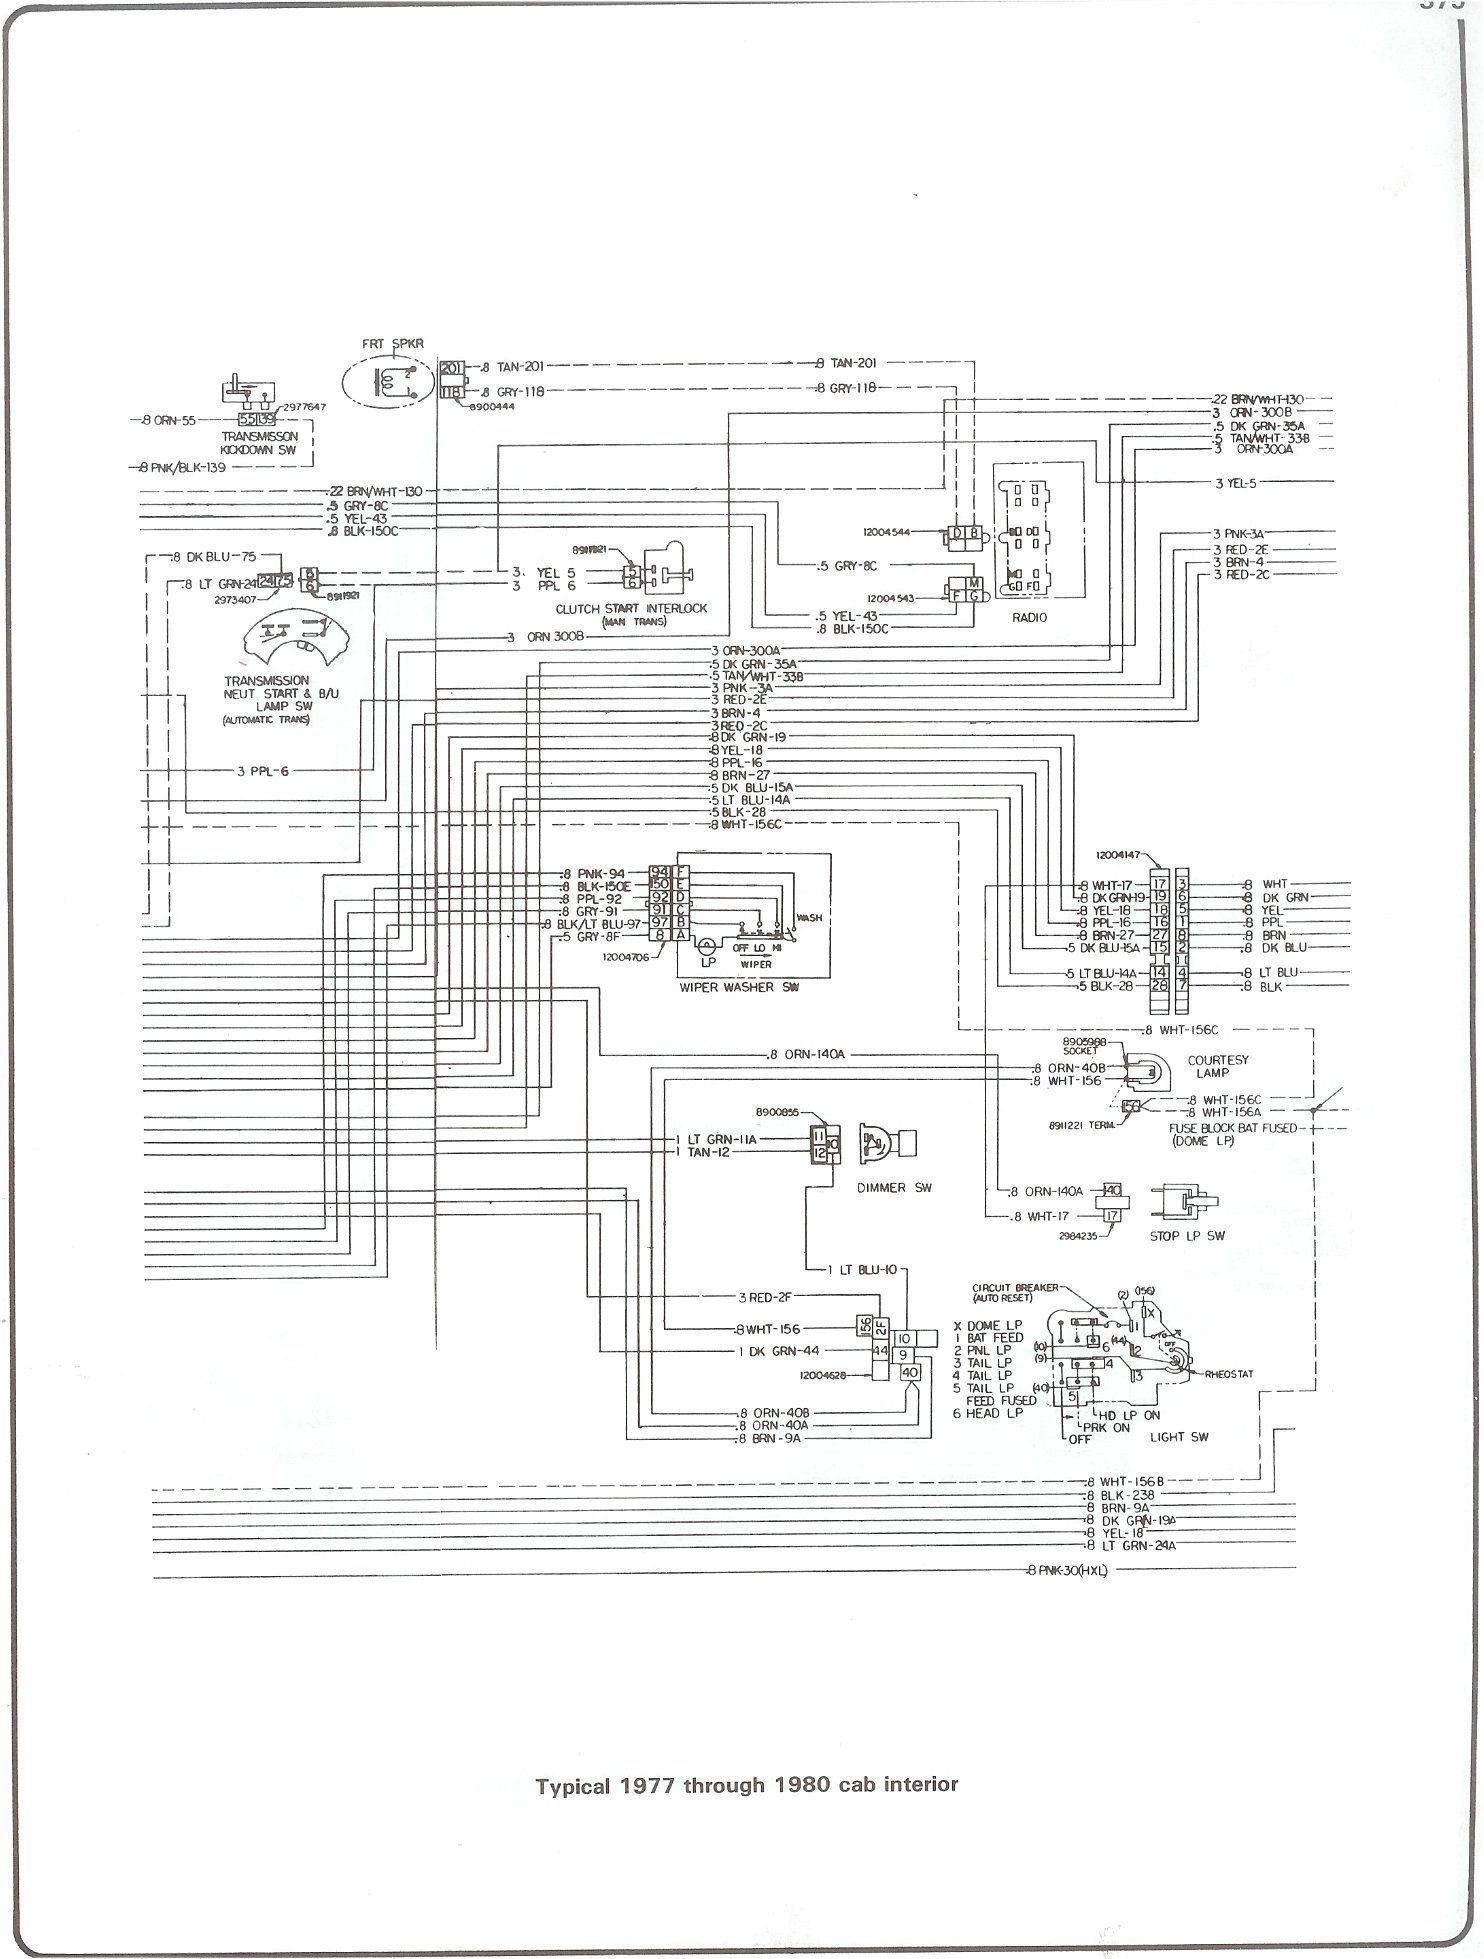 77 80_cab_inter complete 73 87 wiring diagrams 1987 chevy wiring diagram at soozxer.org